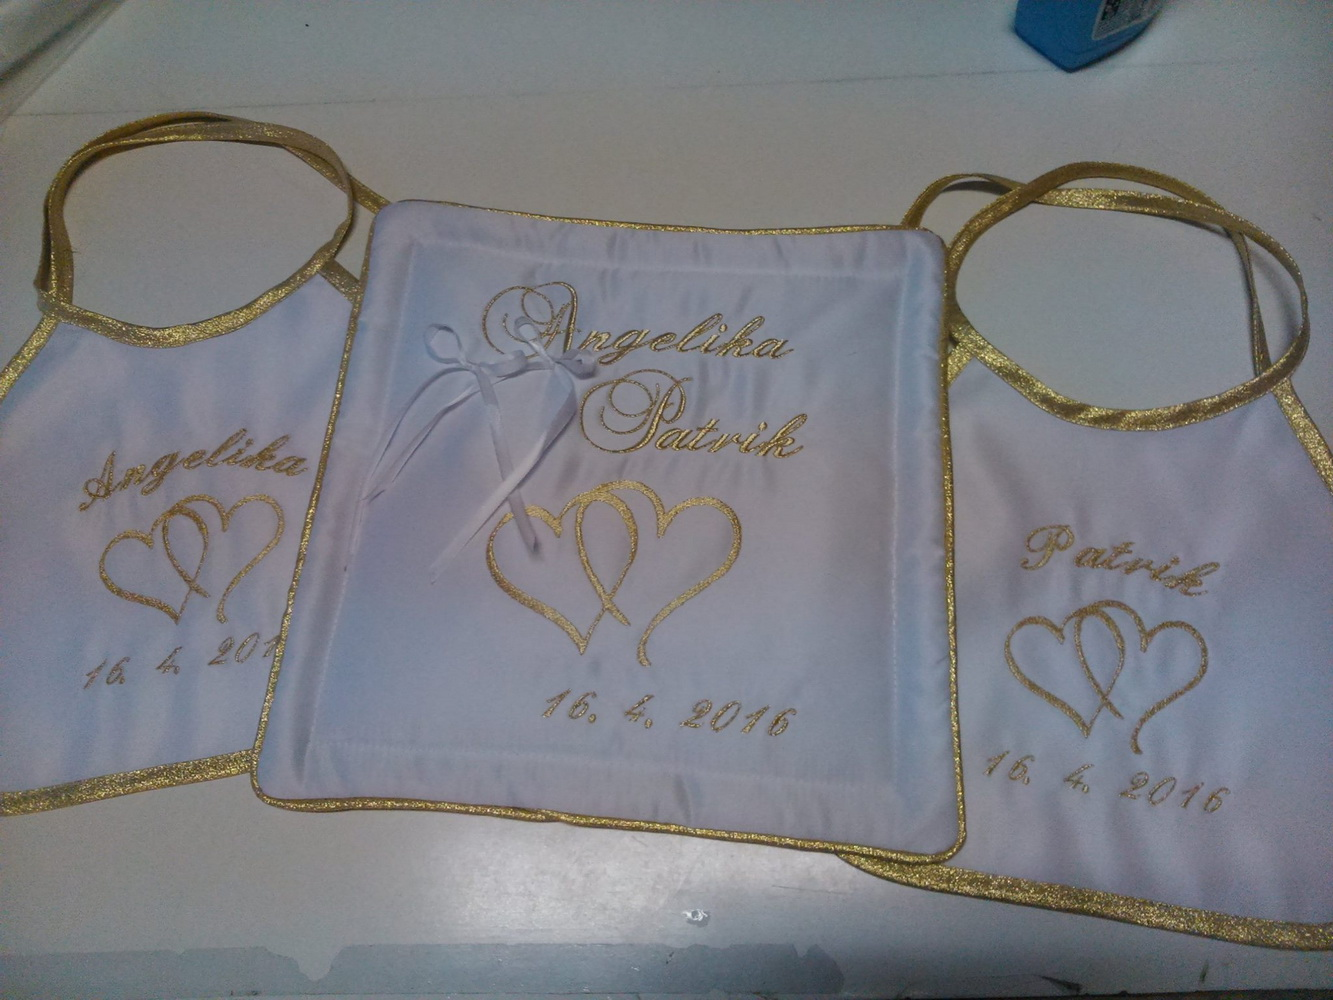 White embroidered bibs with two hearts design